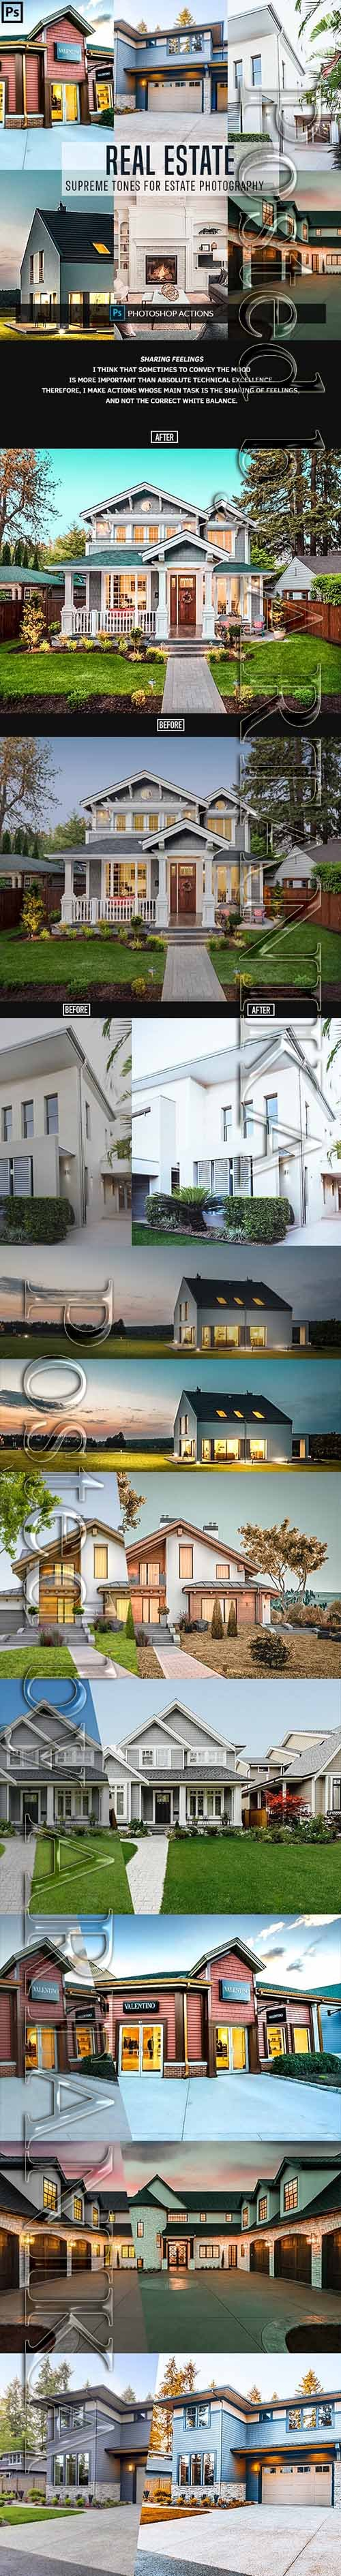 GraphicRiver - Real Estate Photoshop Actions 23152813